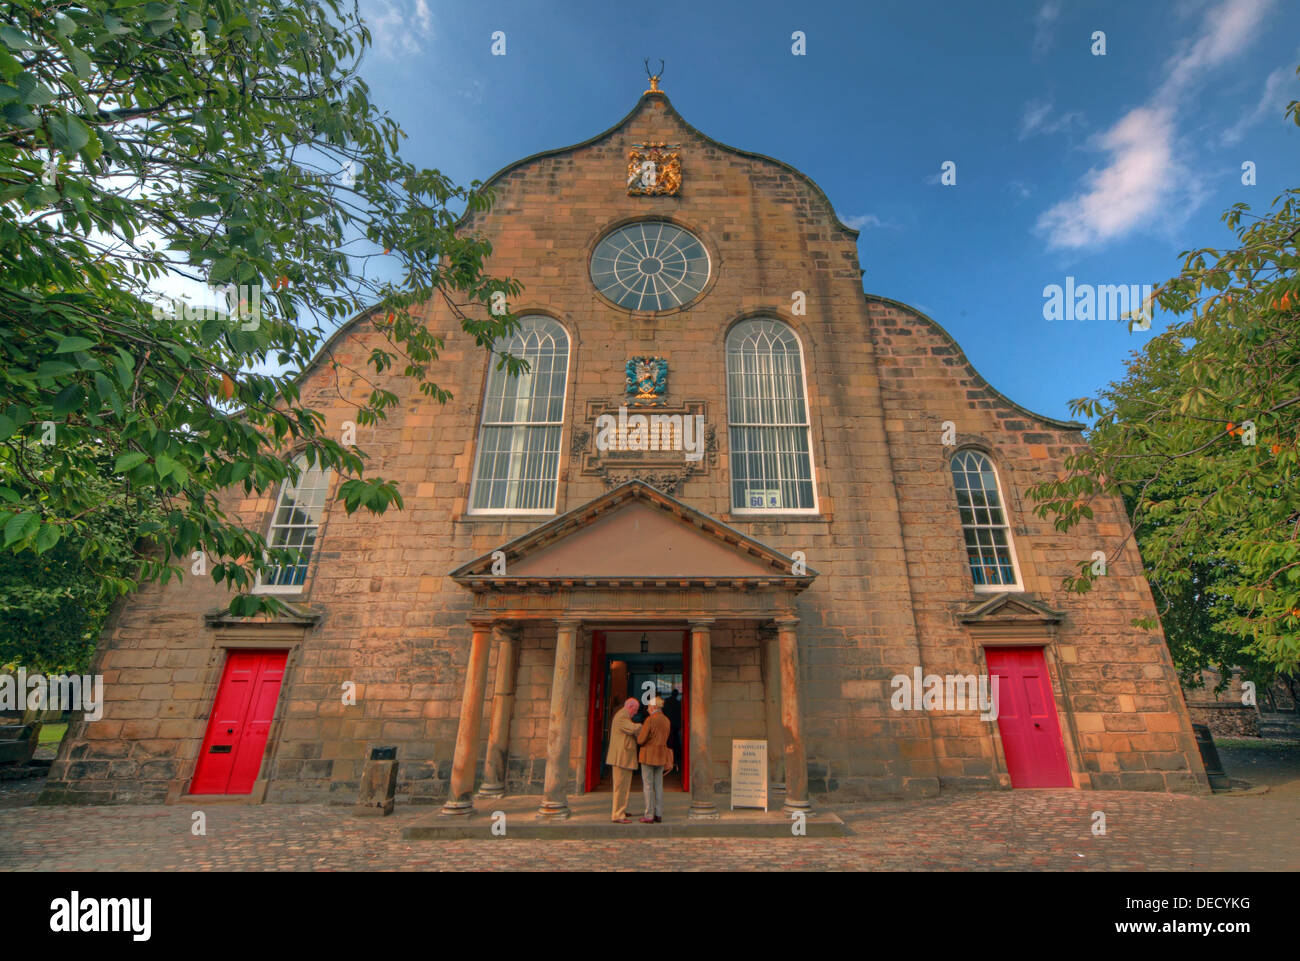 EH8,8BN,EH88BN,interior,inside,outside,historic,tourist,travel,building,architecture,kirkyard,churchyard,yard,Canon,gate,of,old,town,oldtown,parish,castle,cots,Scottish,scotch,burgh,city,Dutch-style,end,gable,worship,services,Sunday,anglican,religion,religion,Christianity,royal,outside,exterior,gotonysmith,Palace,of,Holyroodhouse,Holyrood,capital,Dutch,style,small,doric-columned,portico,over,the,entrance,doric,column,columned,Regiment,of,the,British,Army,chapel,red,door,doors,oldtown,Buy Pictures of,Buy Images Of